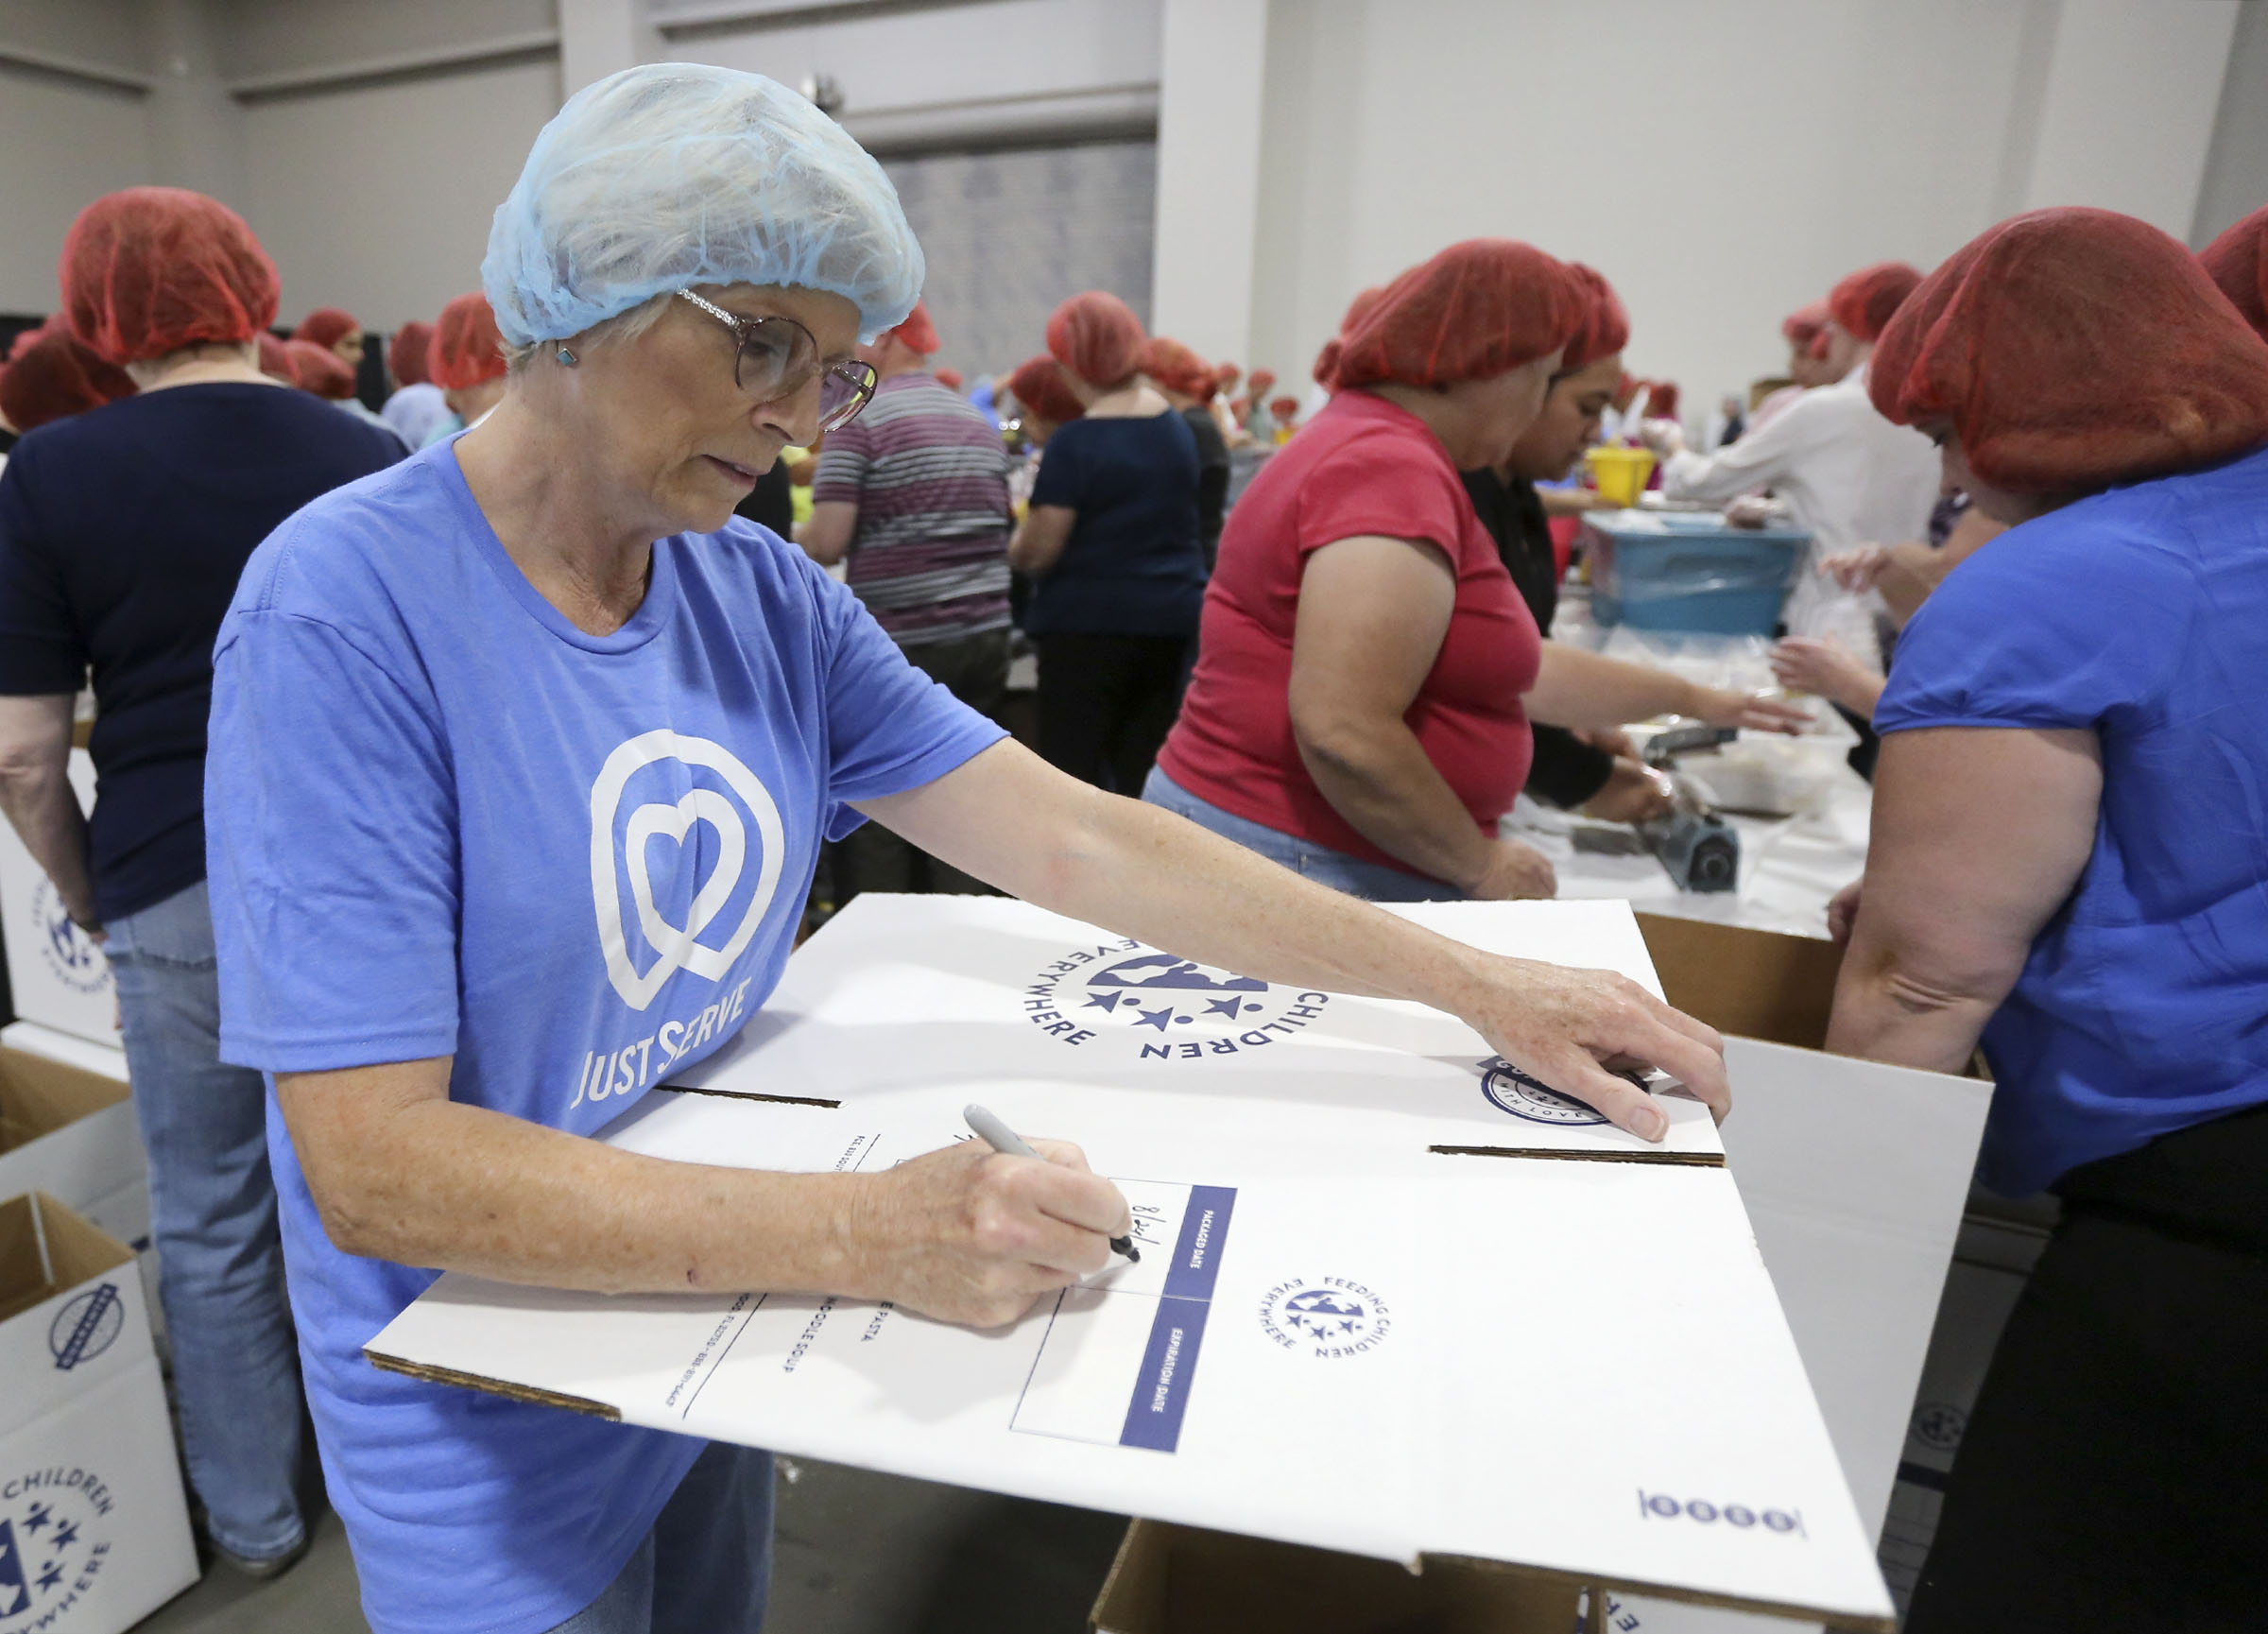 Joy Nelson labels boxes for a service project during the 68th United Nations Civil Society Conference at the Salt Palace Convention Center in Salt Lake City on Monday, Aug. 26, 2019.